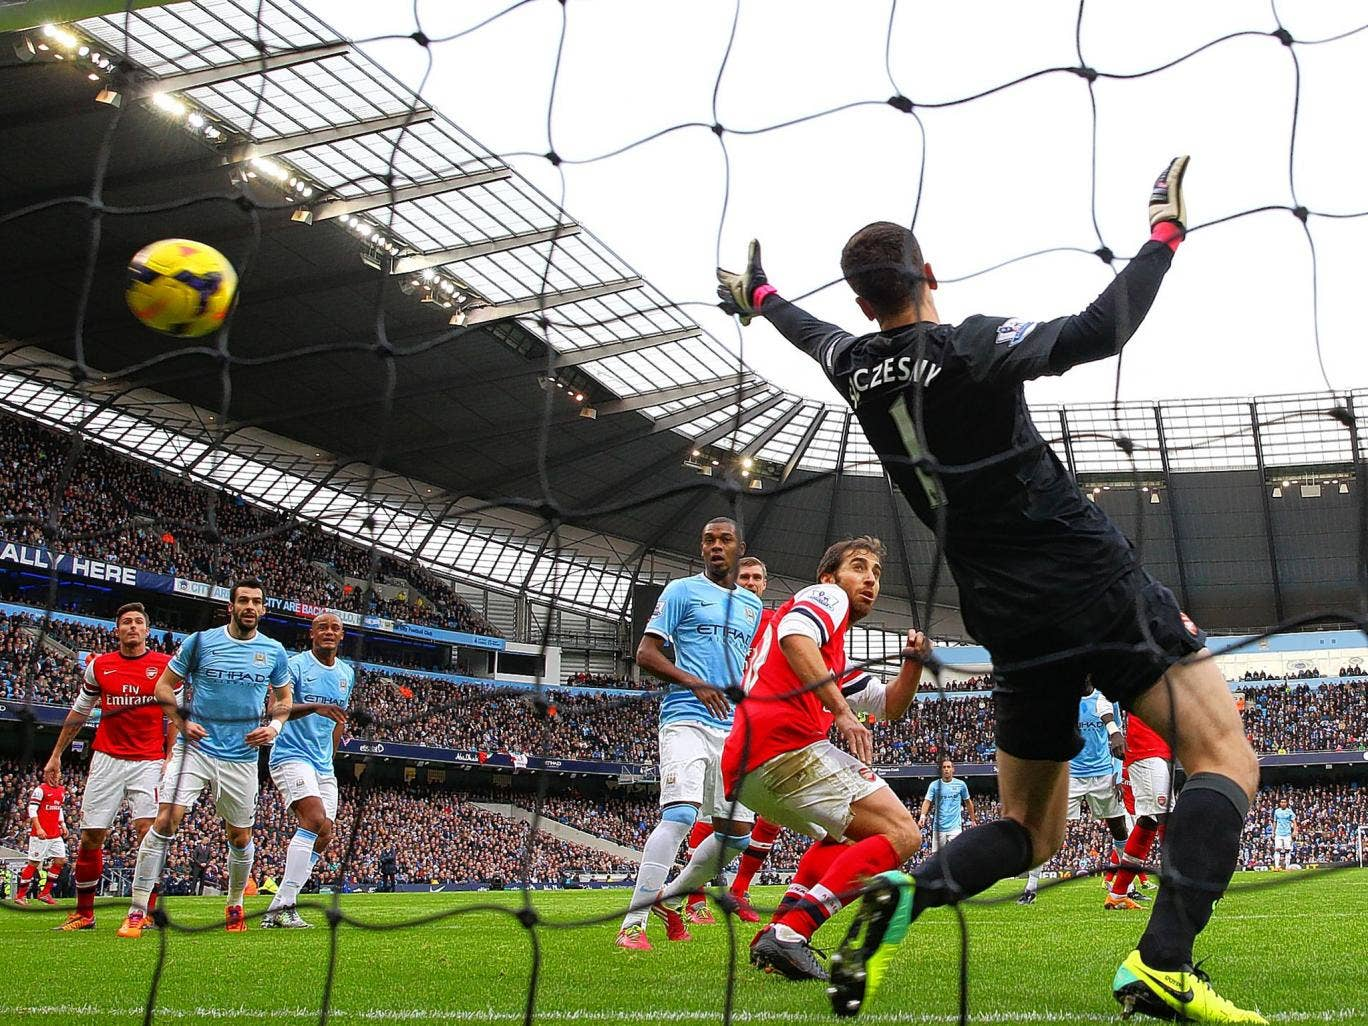 Sergio Aguero (not pictured) puts Manchester City ahead witht he opening goal against Arsenal